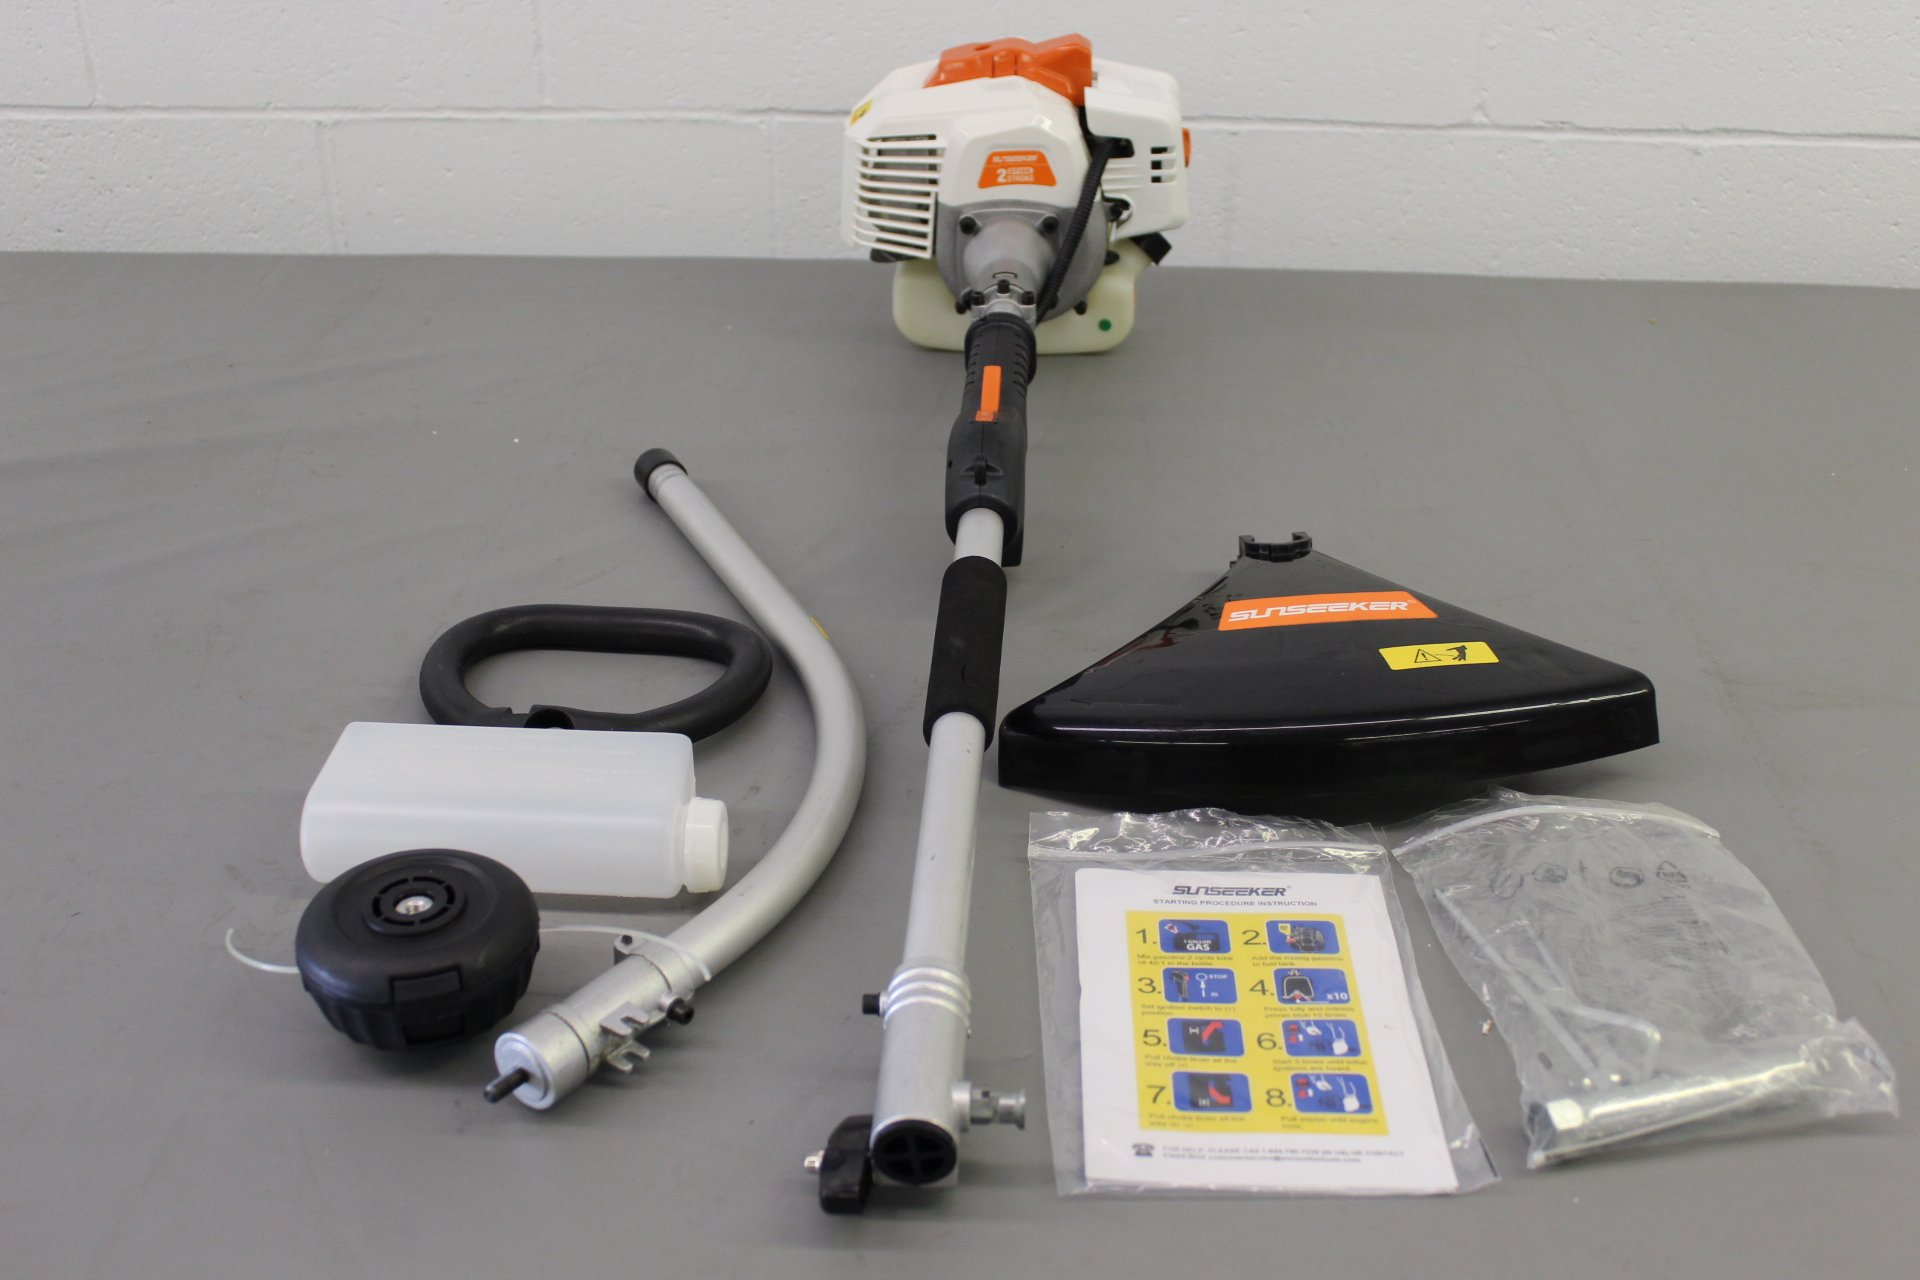 R-GTI26: Sunseeker 2-Cycle 26 cc Curved Shaft Gas String Trimmer and Brush Cutter